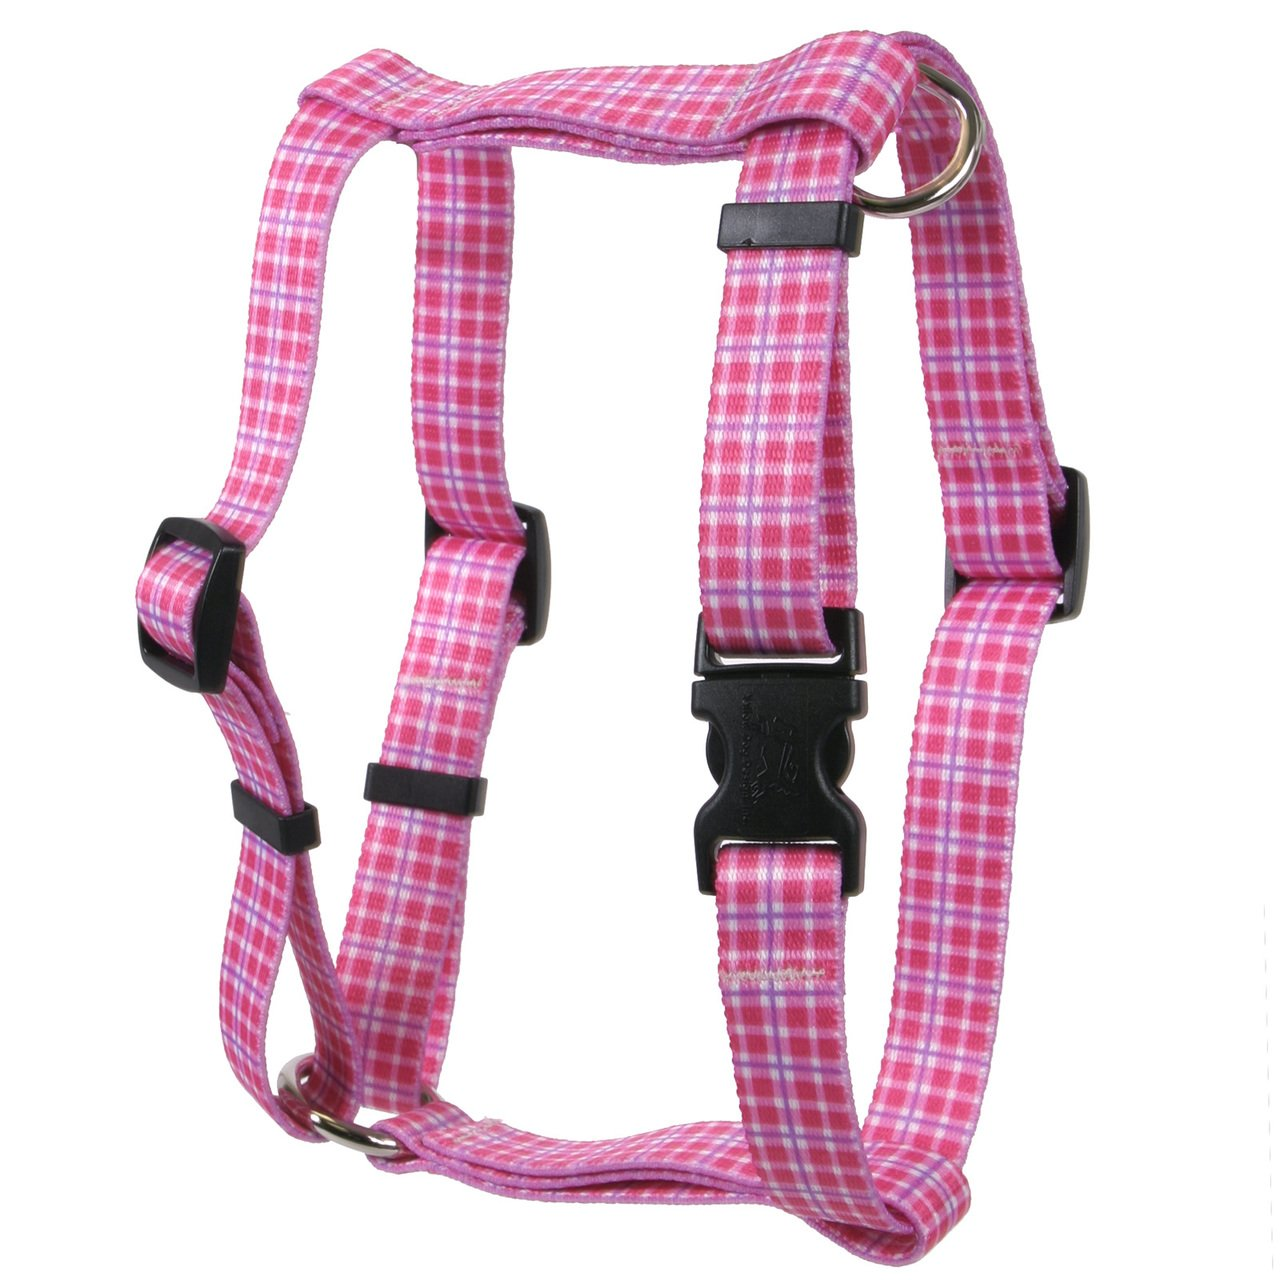 Yellow Dog Design Preppy Plaid Pink Roman Style H Dog Harness, Large-1'' Wide and fits Chest of 20 to 28'' by Yellow Dog Design